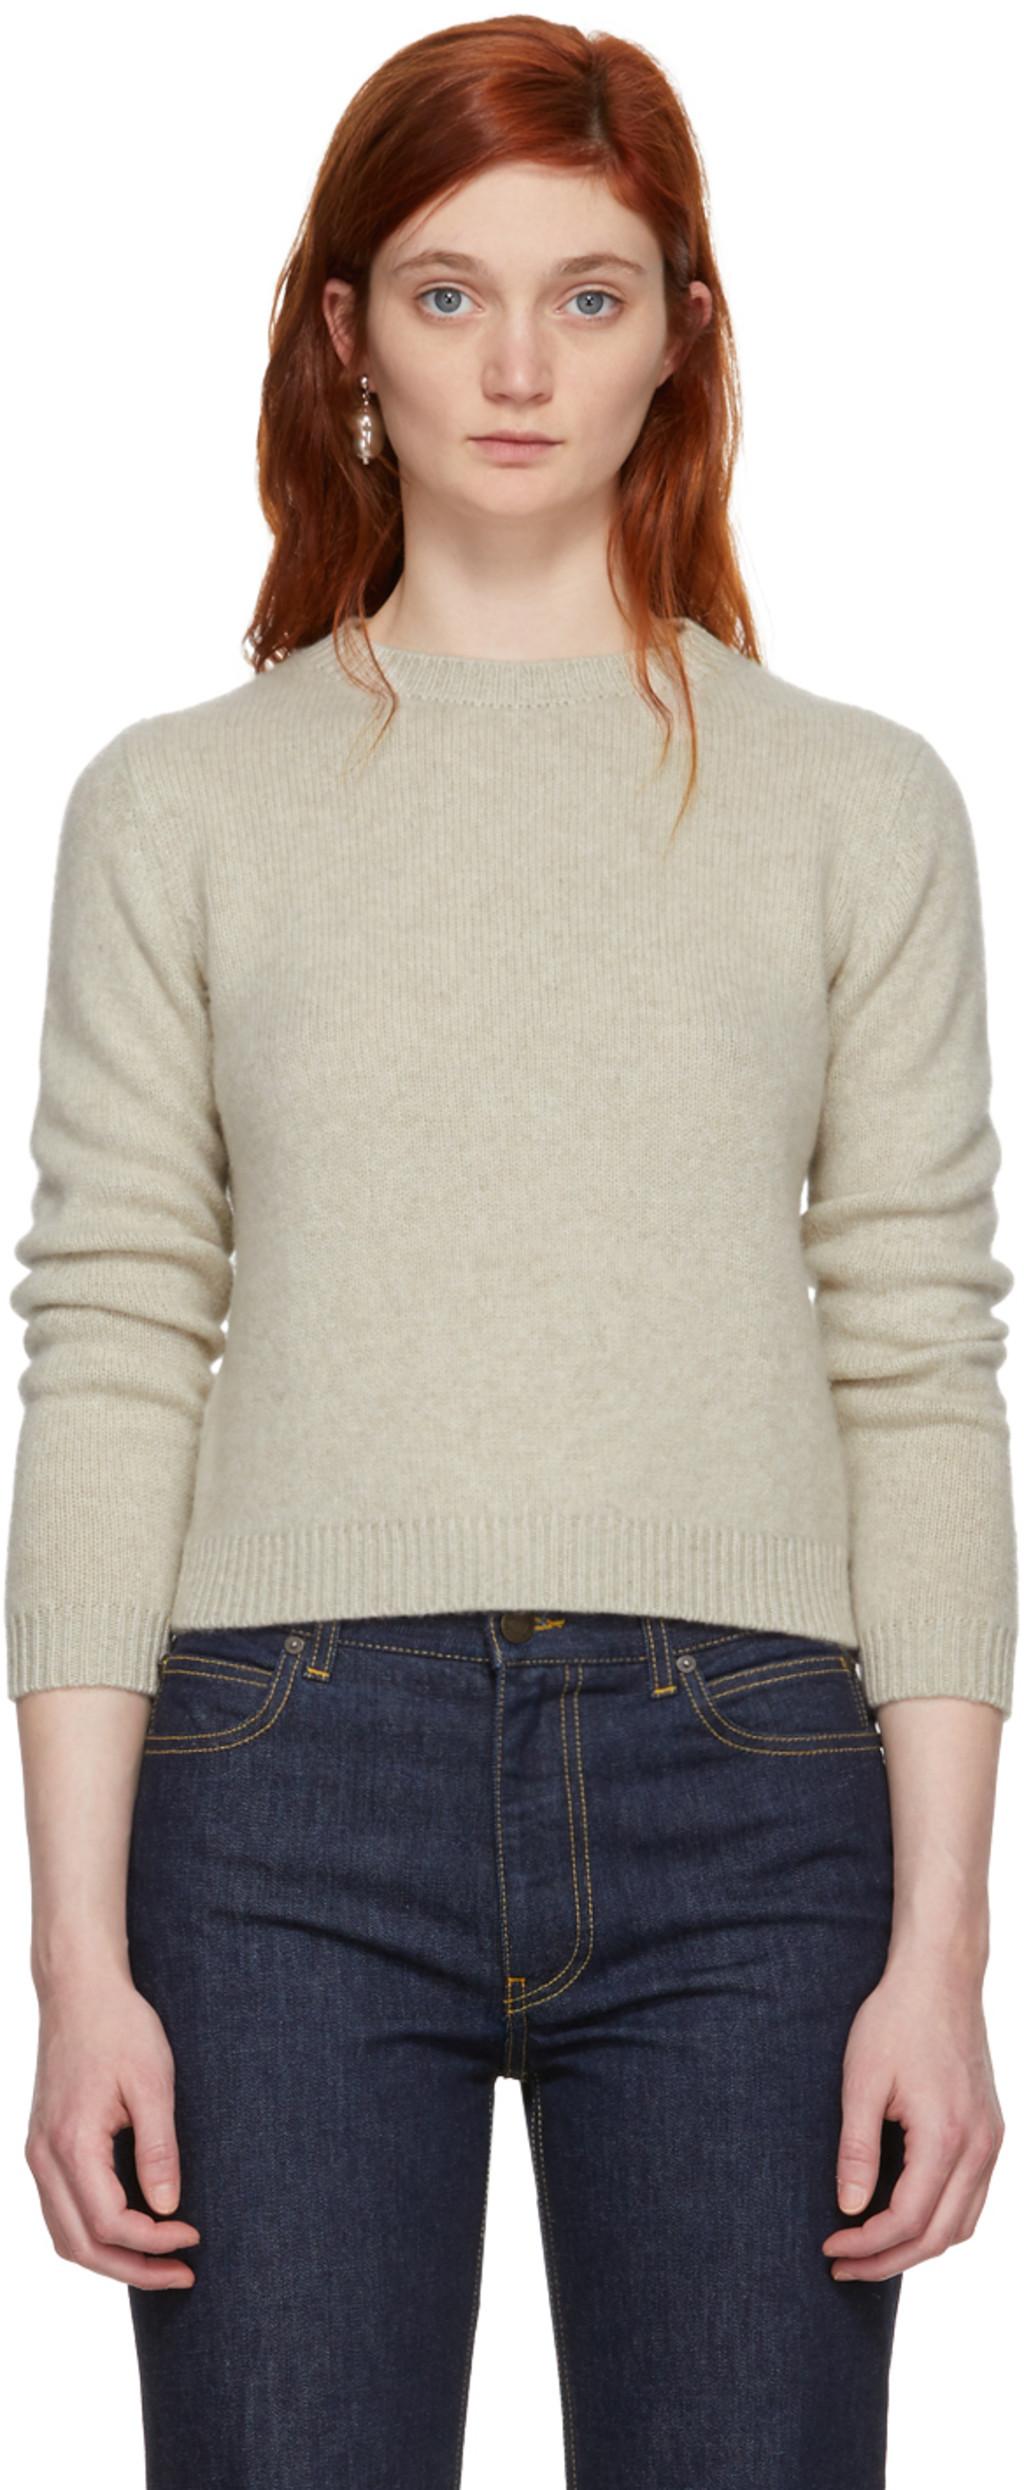 Clearance 100% Guaranteed Off-White Cashmere Simple Cropped Crewneck Sweater The Elder Statesman Perfect Sale Online Discount Largest Supplier Discounts Free Shipping Sneakernews BxMrTc